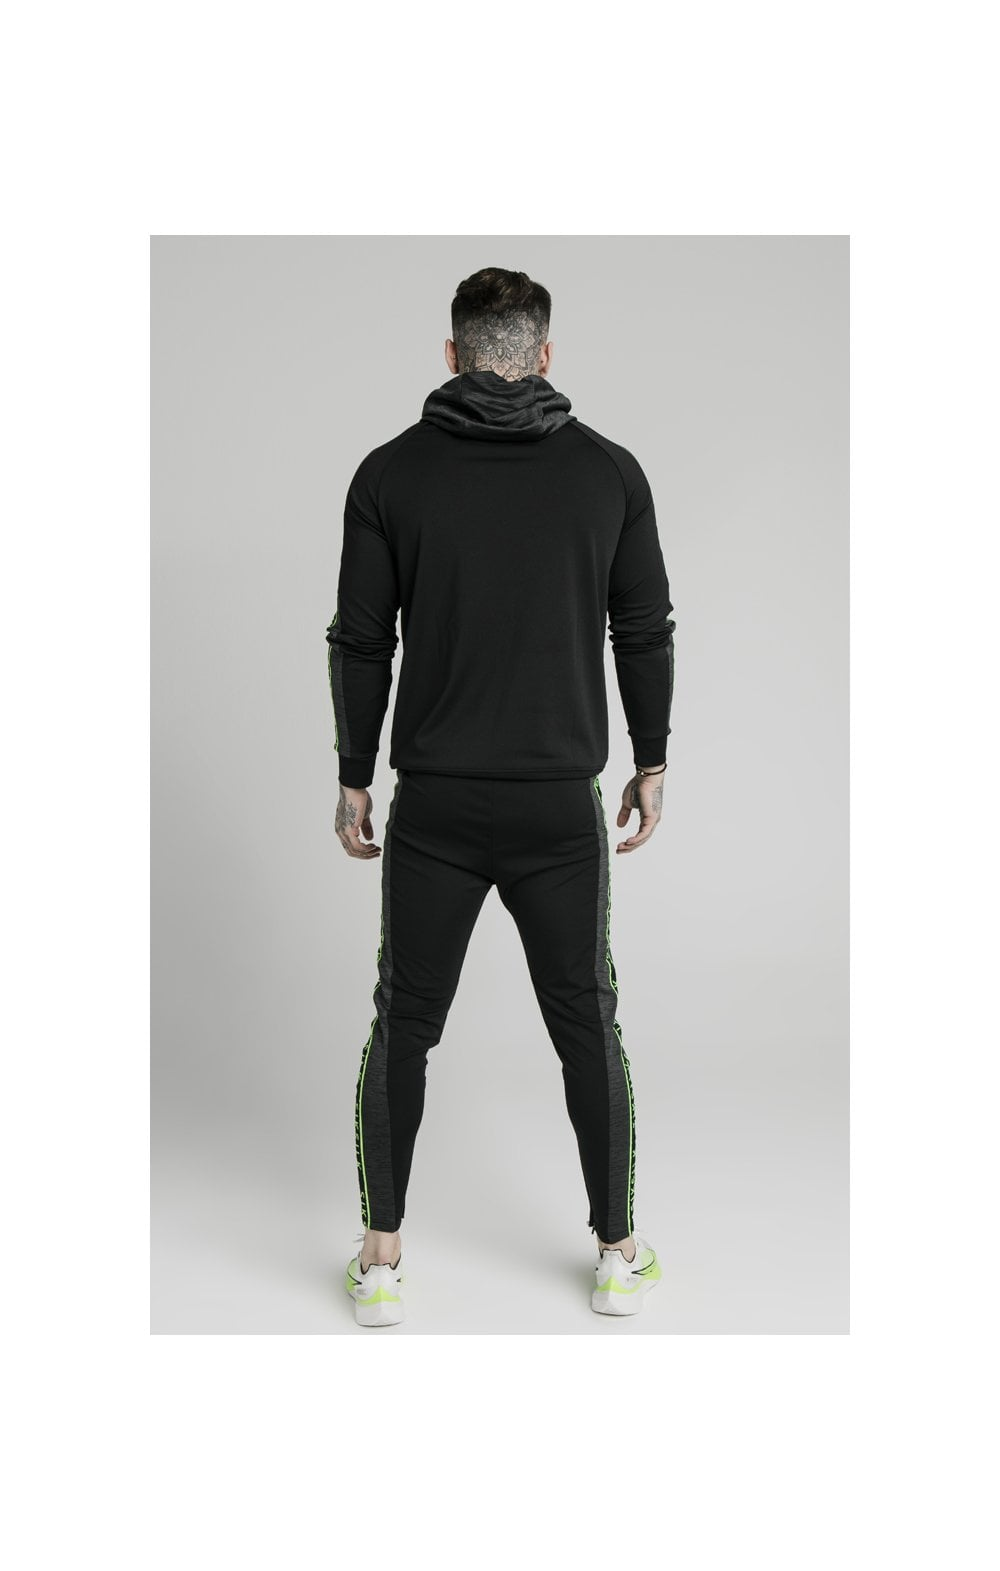 Load image into Gallery viewer, SikSilk Hyper Vapour Overhead Tape Hoodie - Black & Neon Fluro (5)